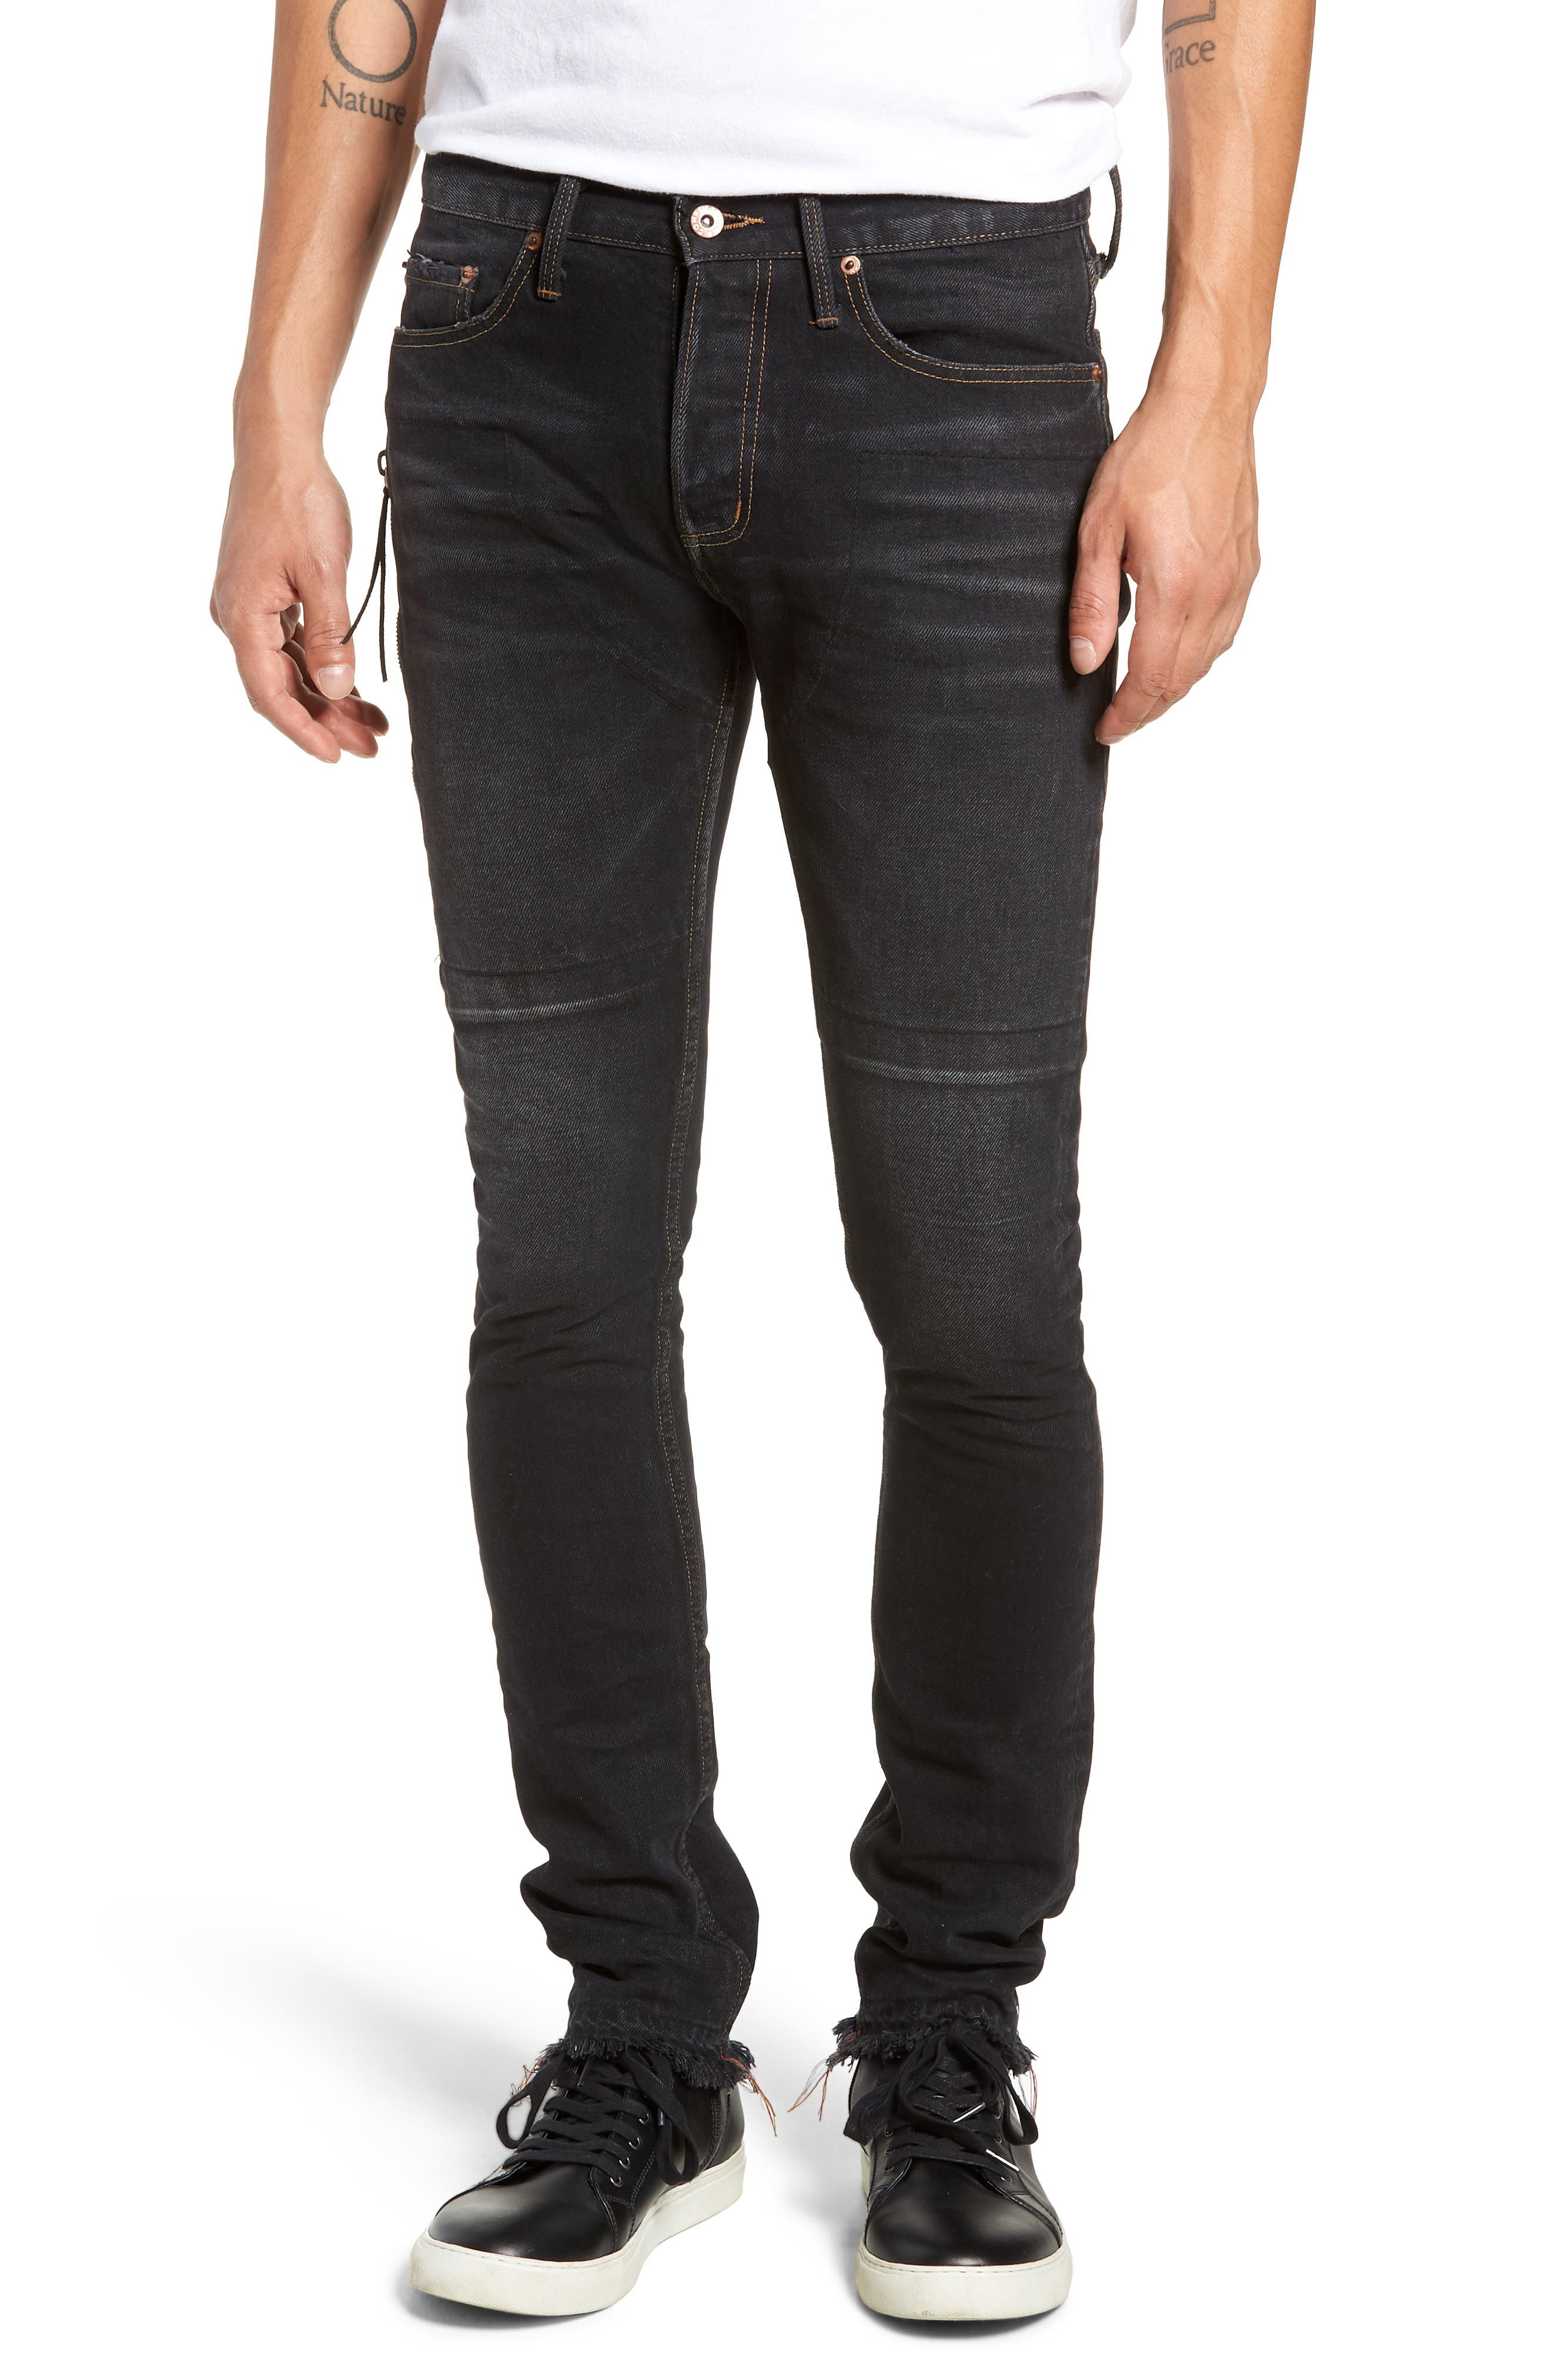 MR. COMPLETELY Trafford Skinny Fit Jeans in Stone Black